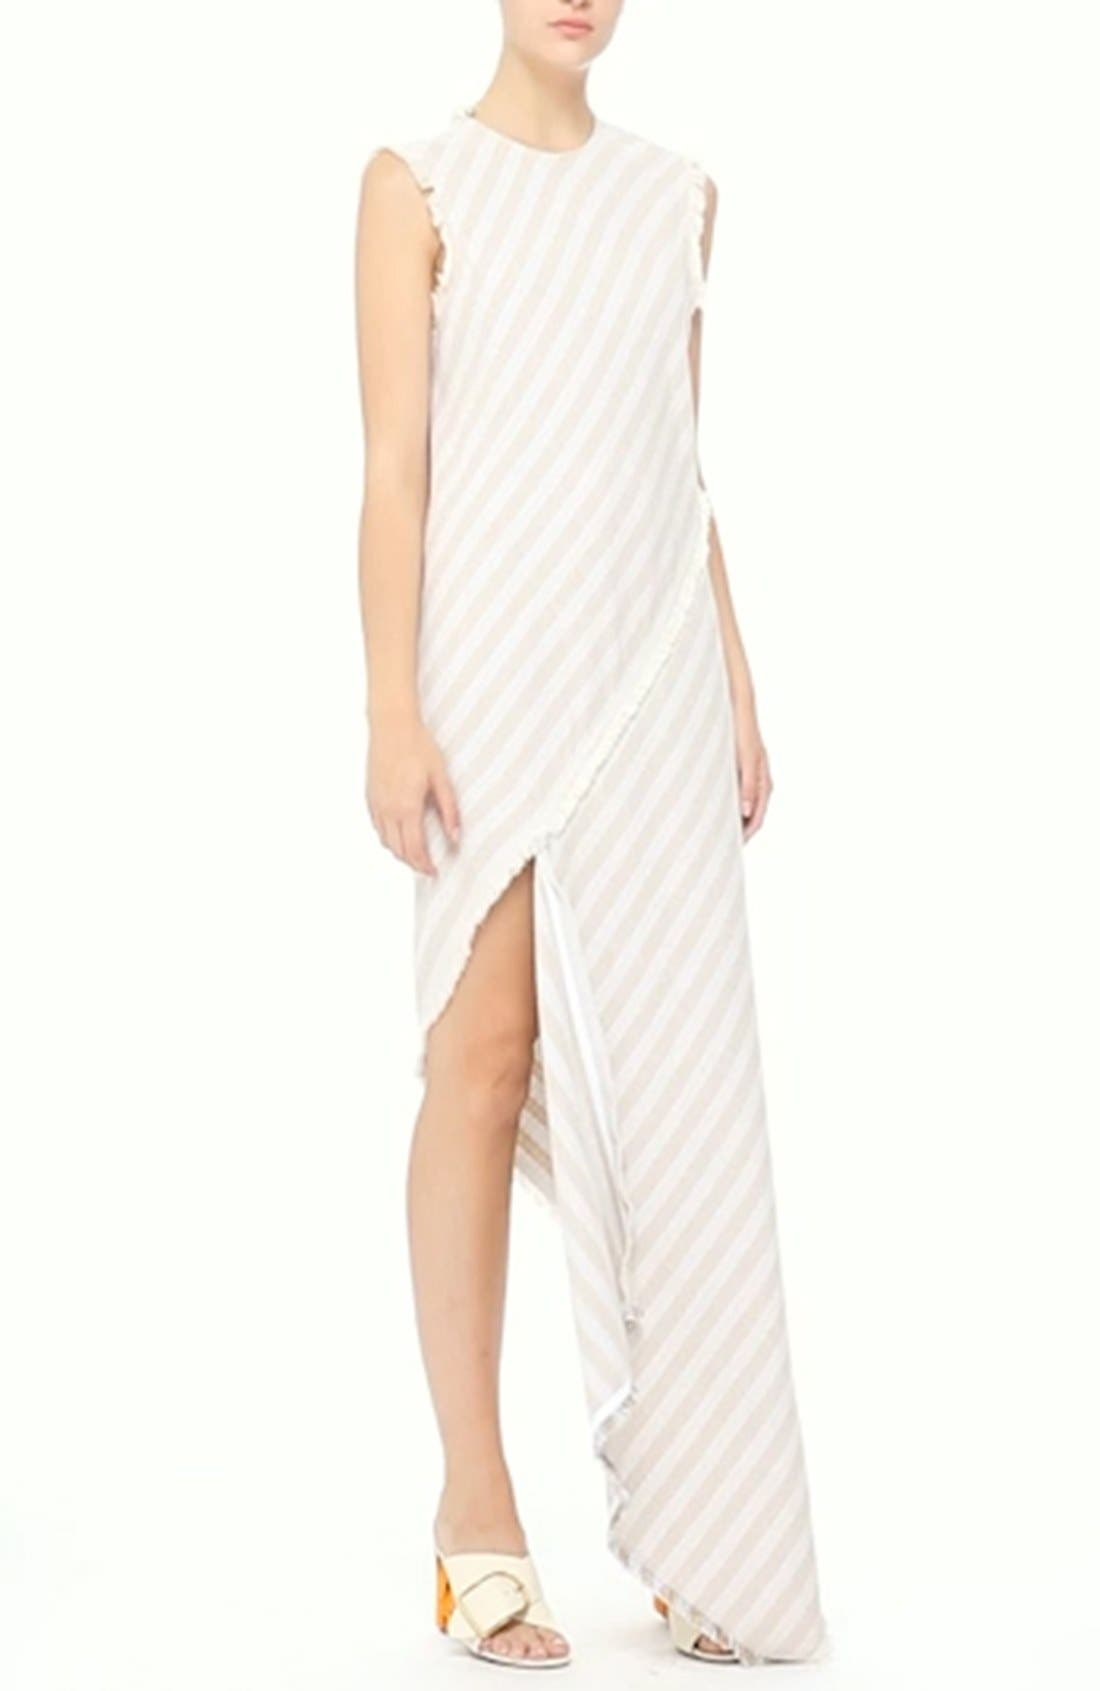 ACNE STUDIOS,                             'Cosby' Stripe Sleeveless Dress,                             Alternate thumbnail 5, color,                             270